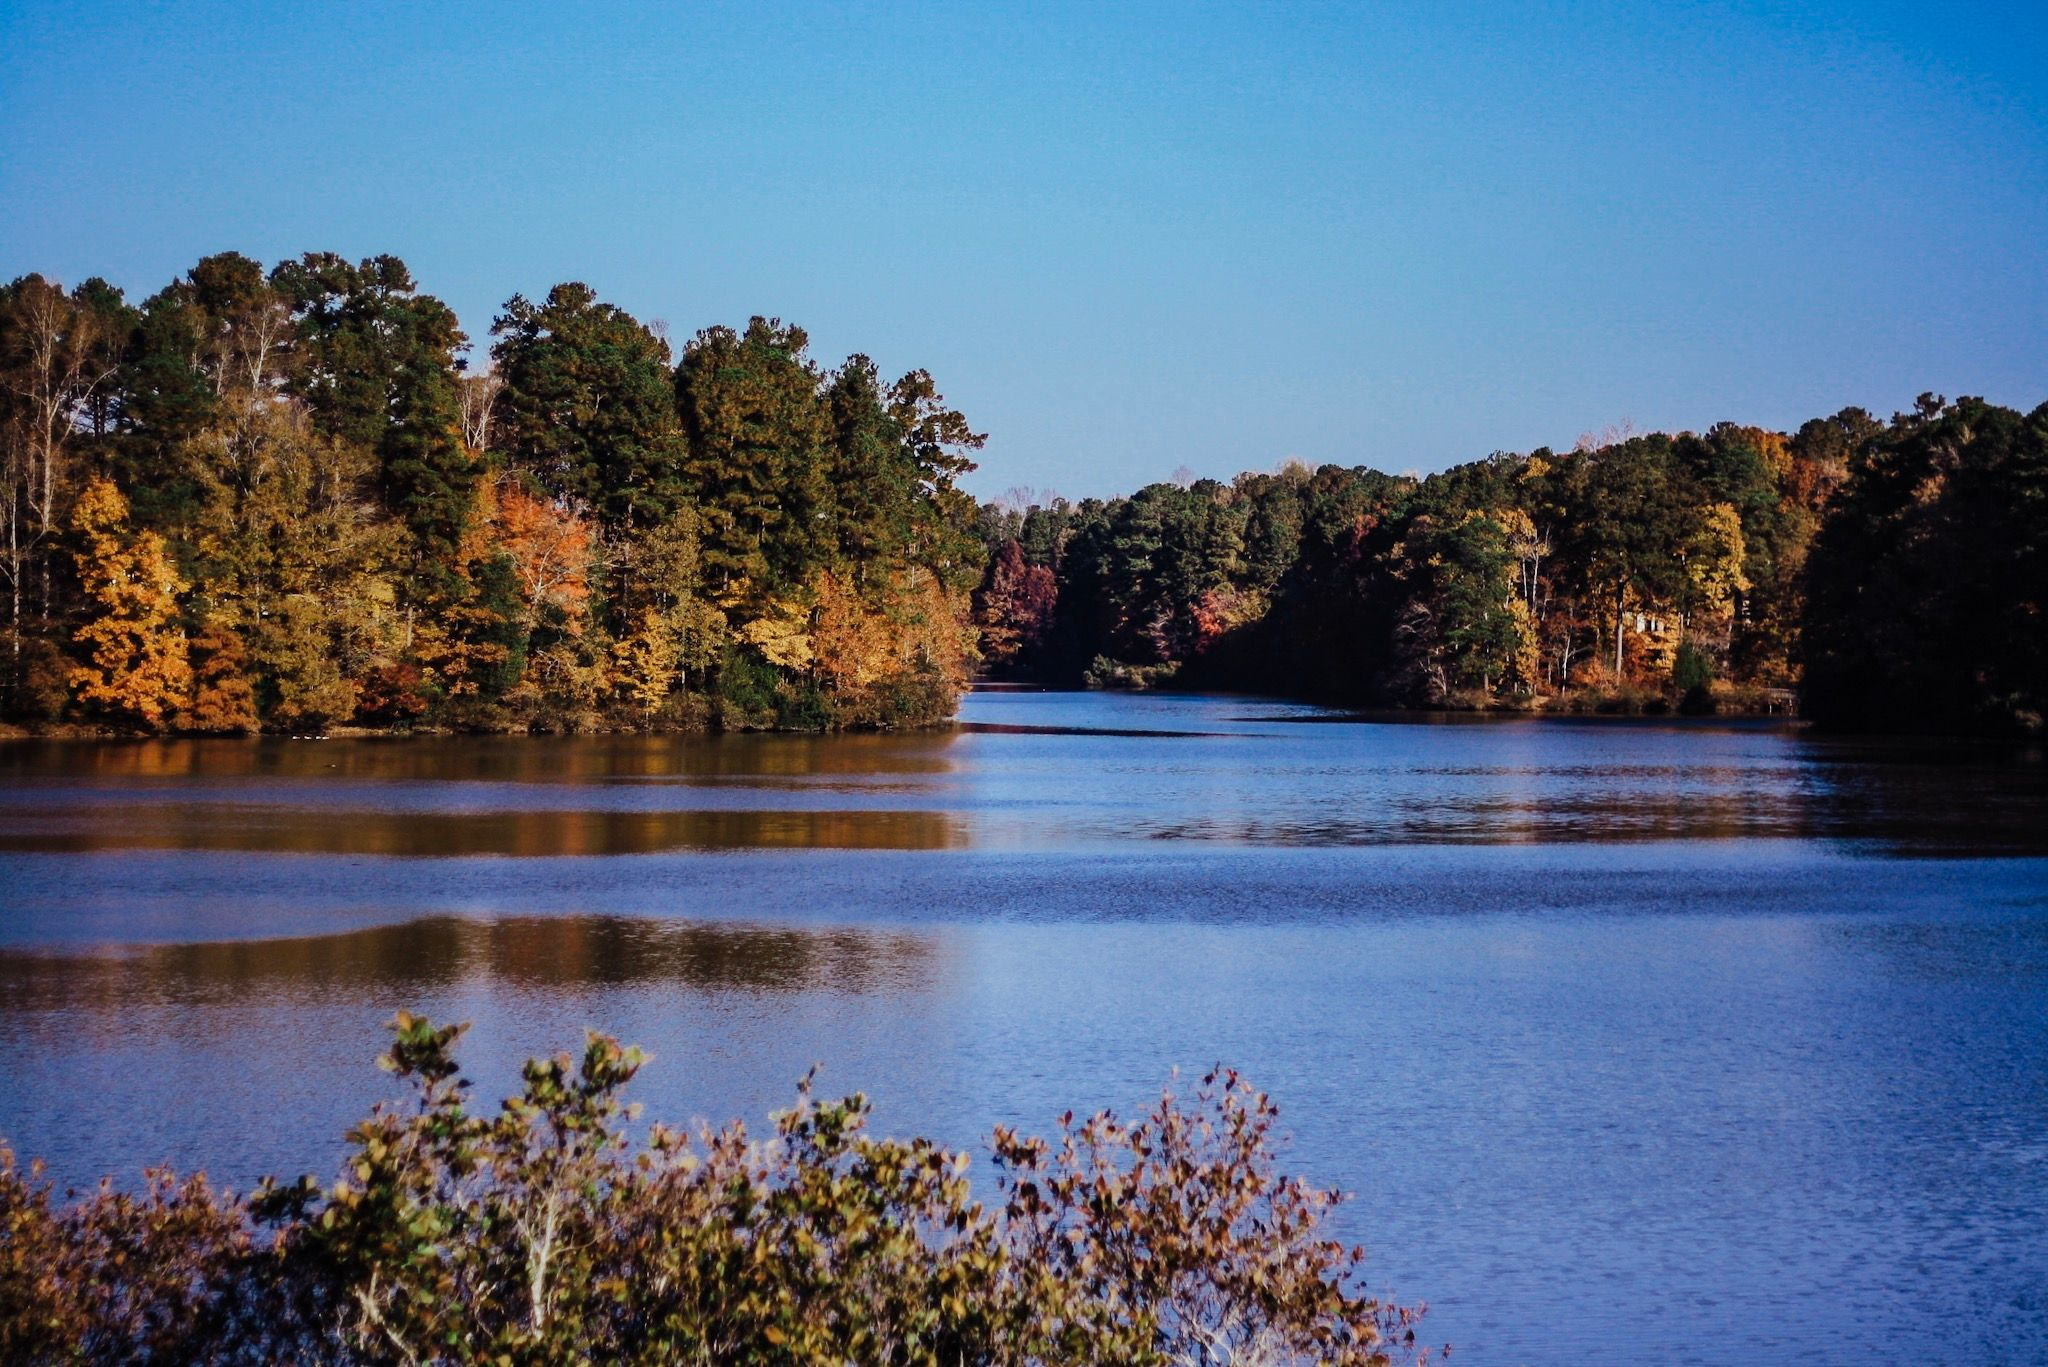 lake Lynn during the fall season in Raleigh north carolina